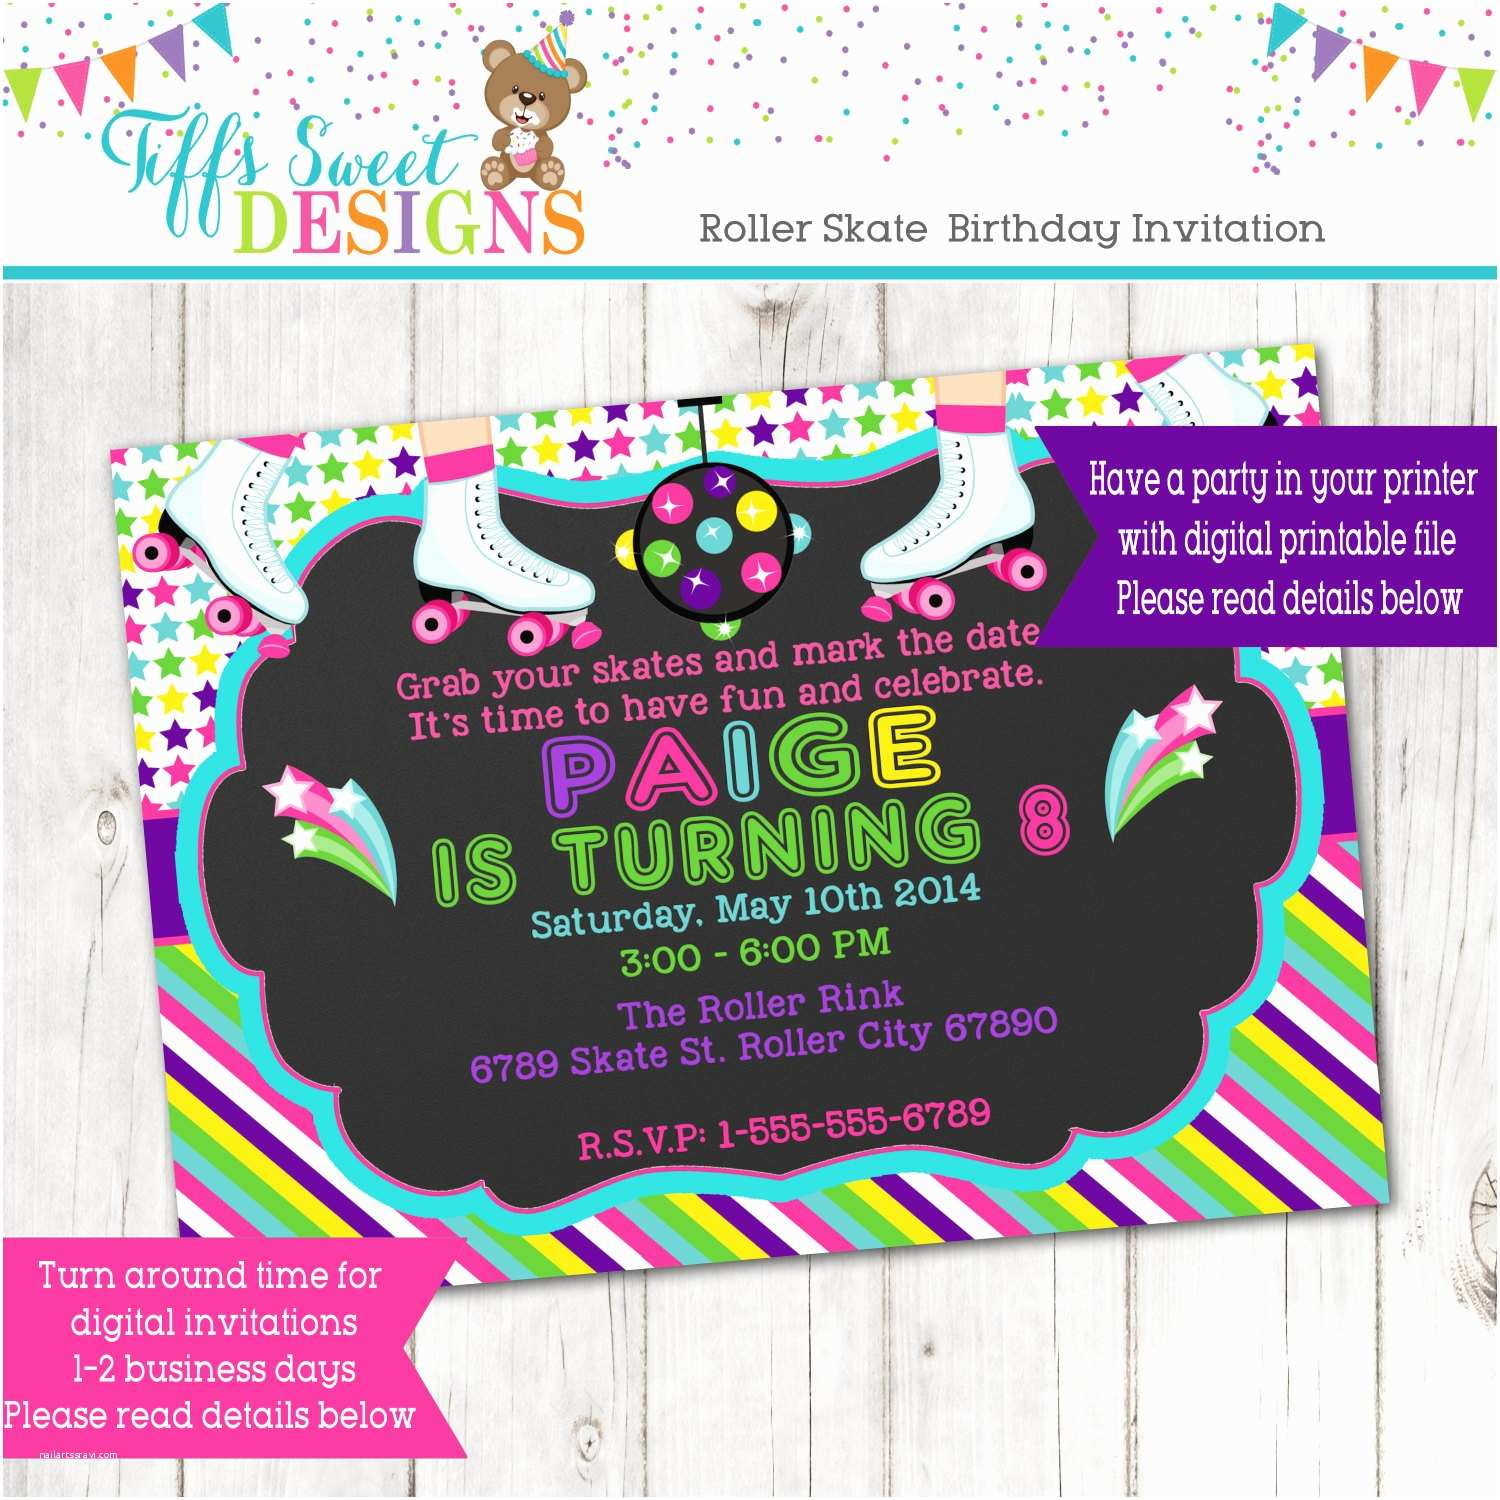 Roller Skating Party Invitations Roller Skate Party Roller Skate Invitation Roller Skate